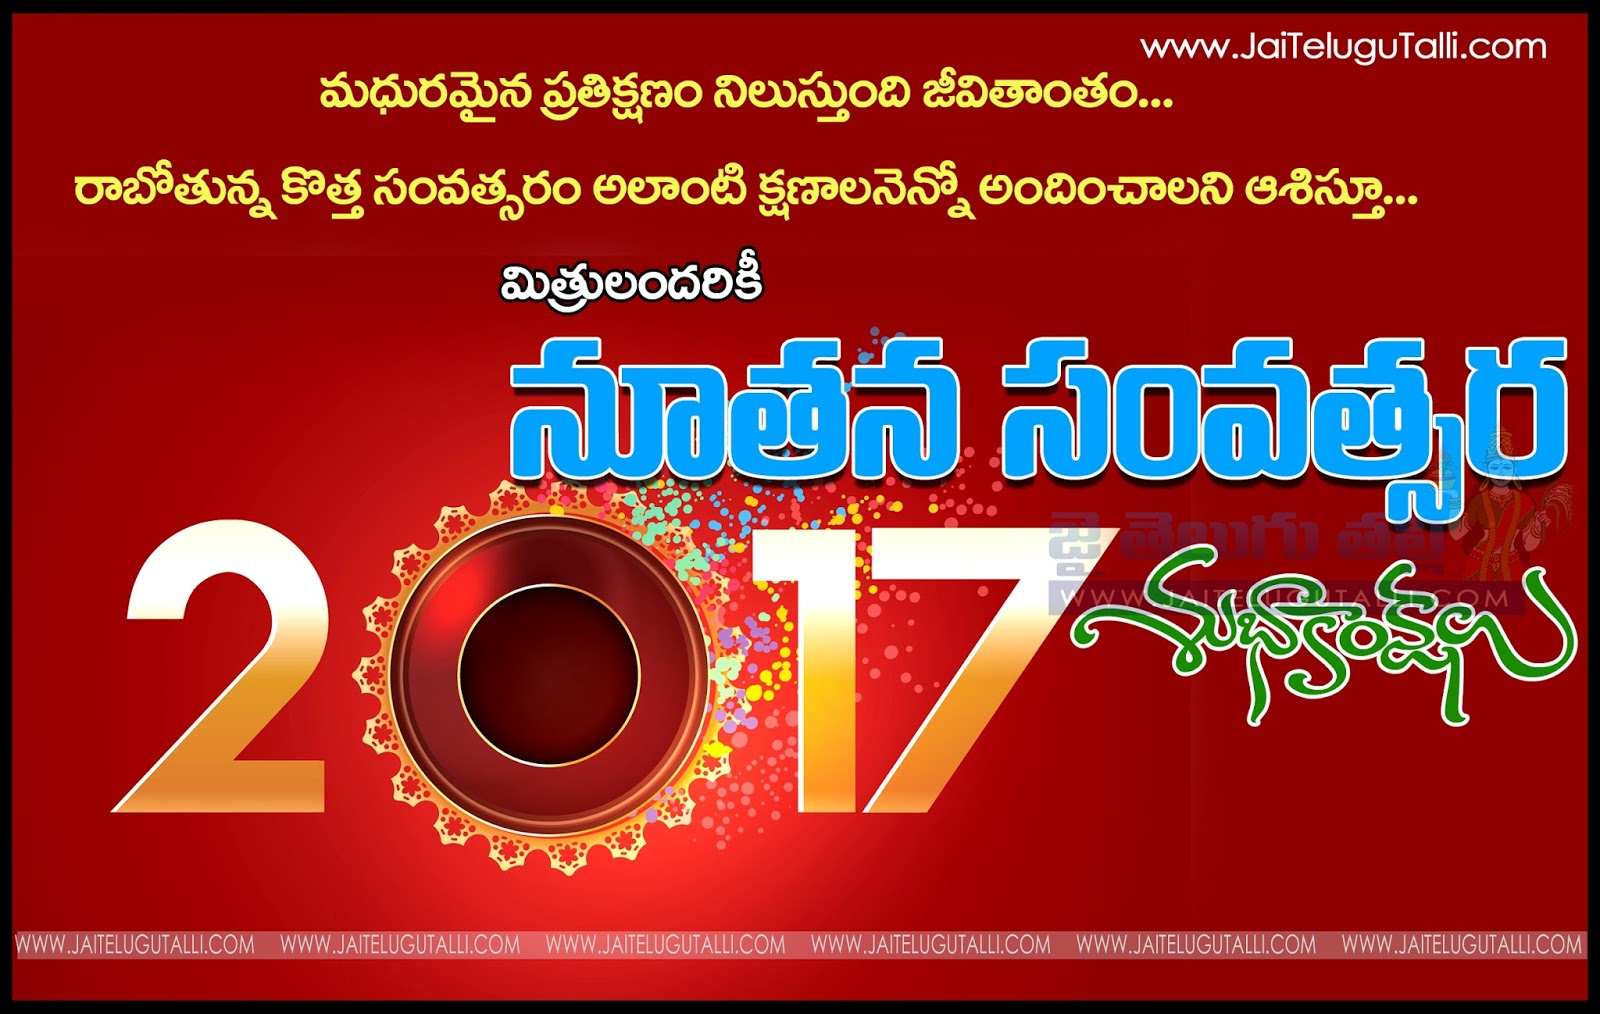 Telugu New Year Greetings To You Hd Wallpapers Happy New Year 2017